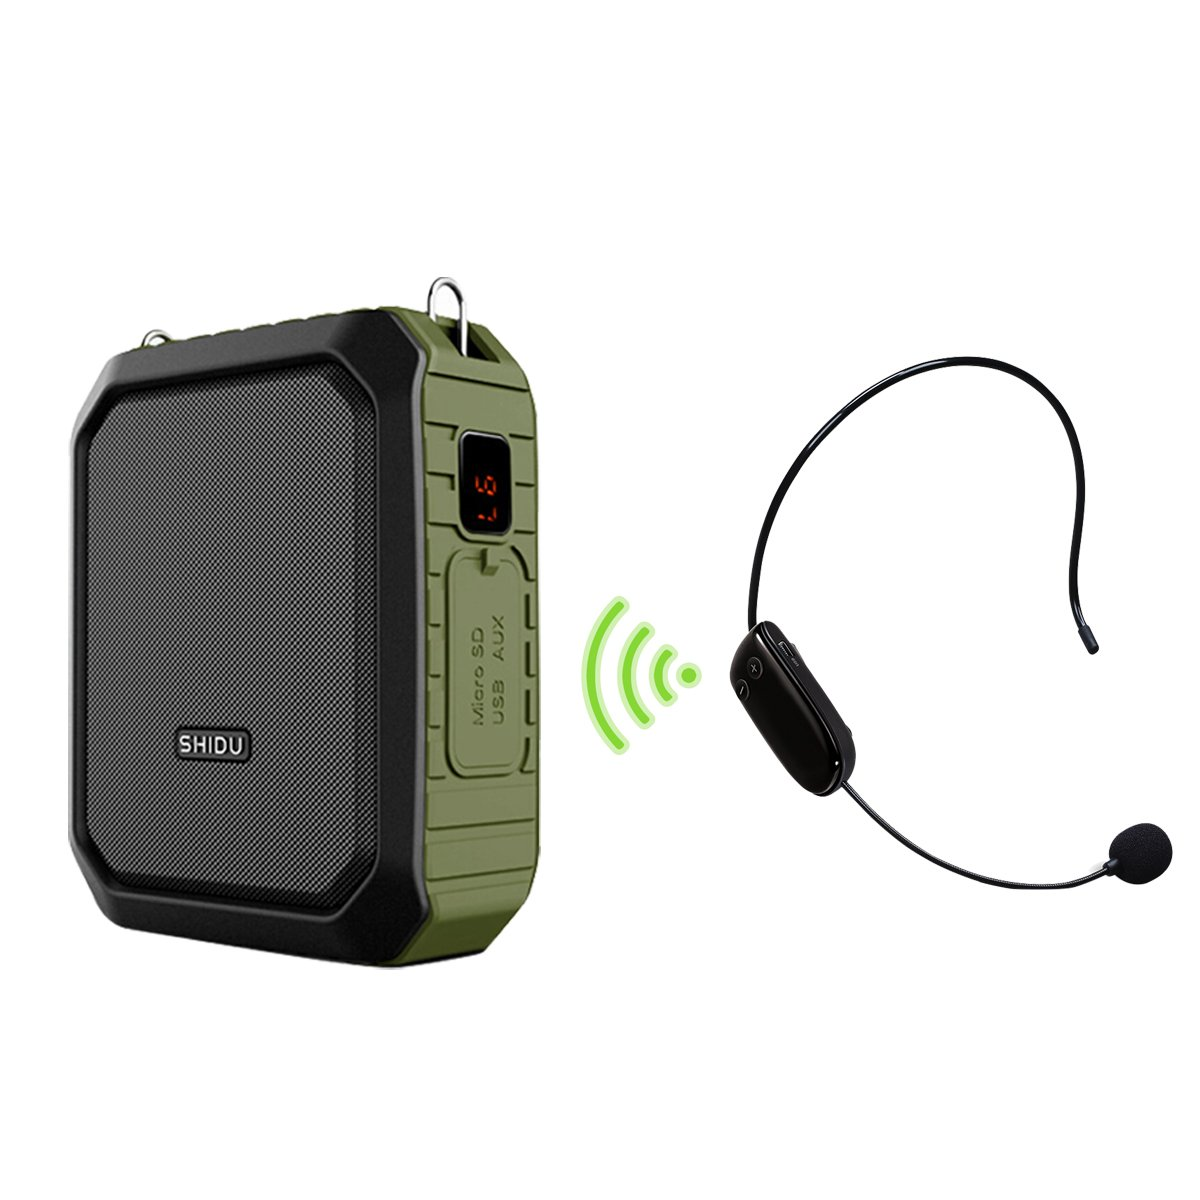 Voice Amplifier 18W Wireless Pa System with Microphone Headset Rugged Portable Bluetooth Speaker Waterproof Personal Microphone Amplifier Built-In 4400mAh Power Bank for Outdoors, Large Groups SHIDU wireless voice amplifier